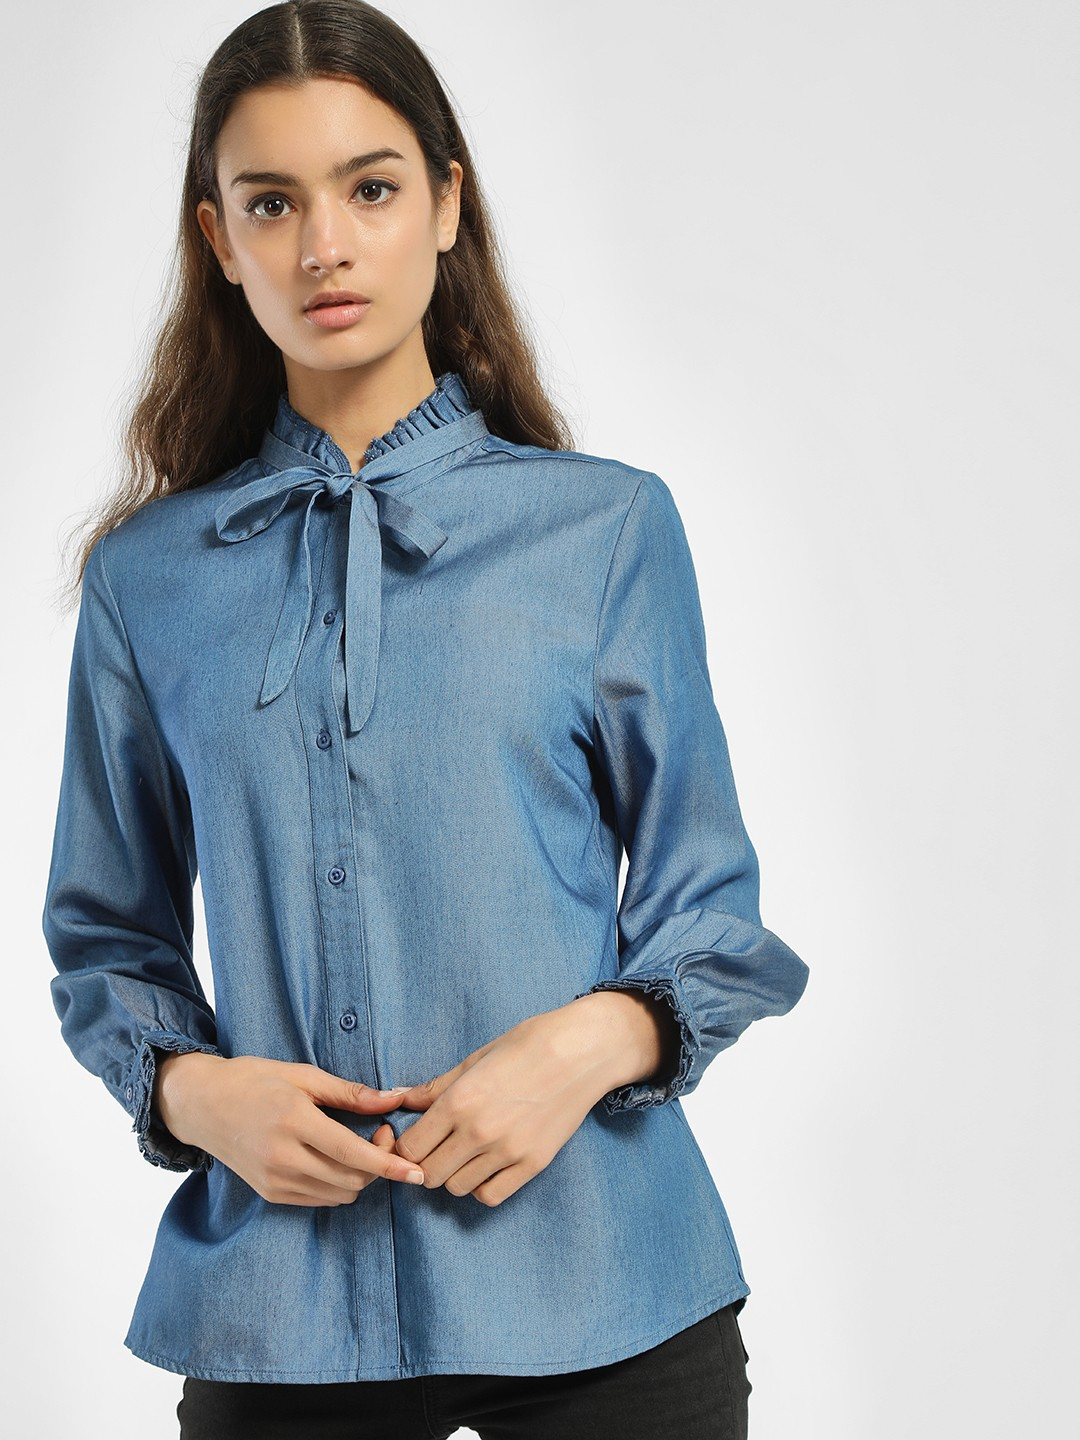 PostFold Blue Ruffled Tie-Up Shirt 1